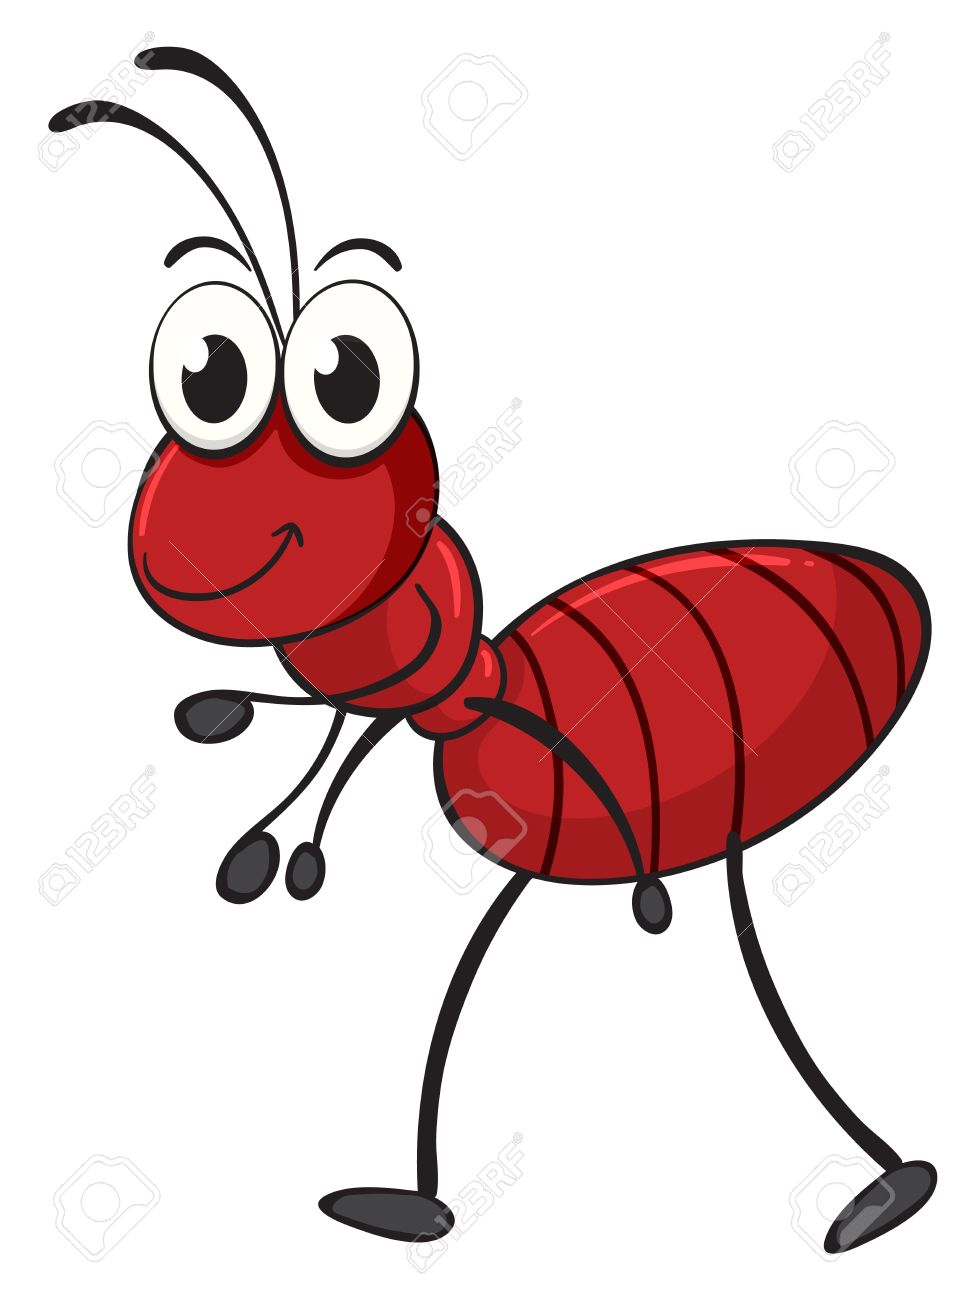 980x1300 4,836 Ant Cartoon Cliparts, Stock Vector And Royalty Free Ant